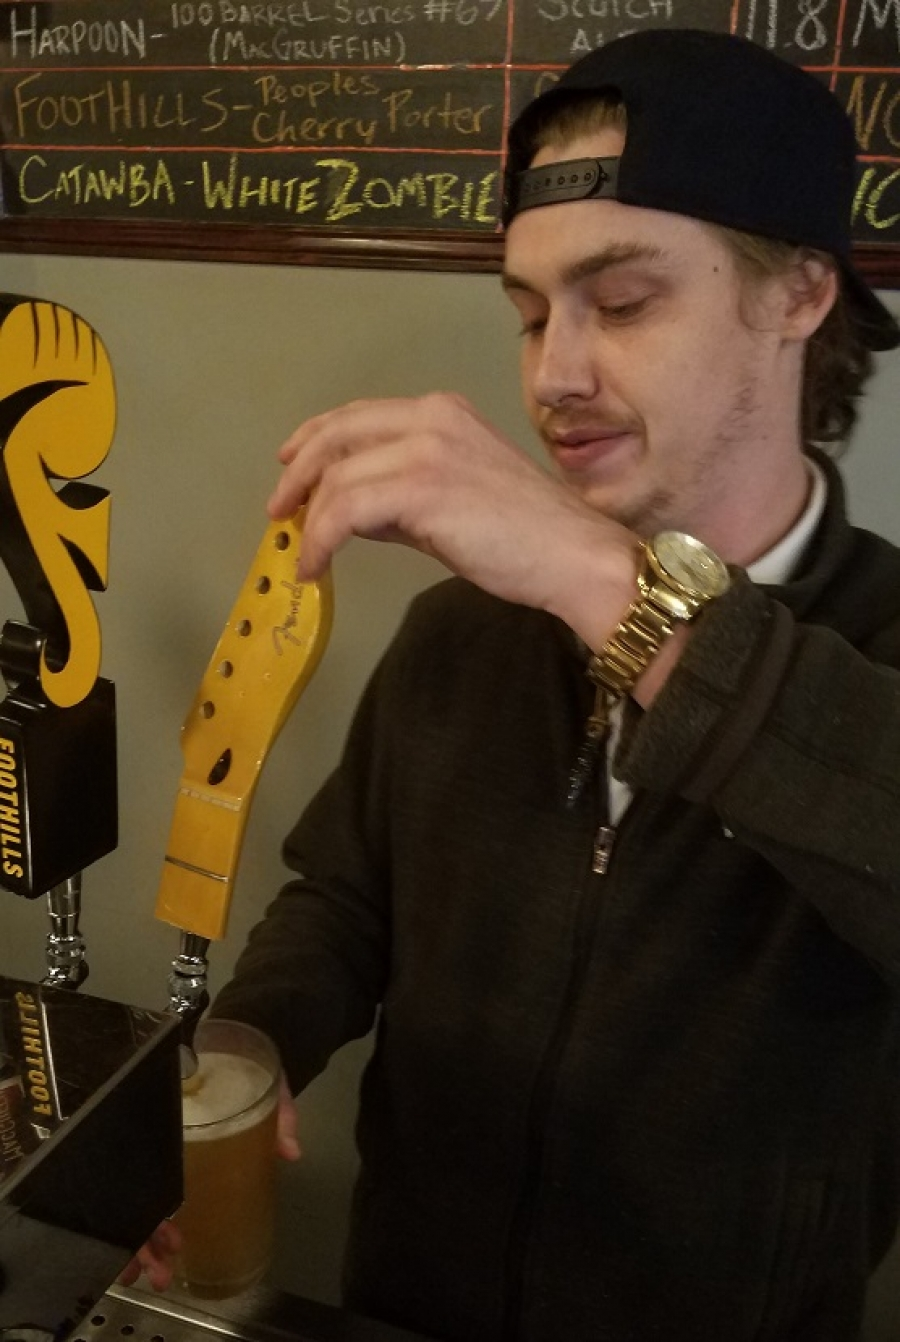 A bartender at The Bruin Craft Beer and Wine in New Bern pours a glass of White Zombie, a white ale made by Charlotte-based Catawba Brewing Company.